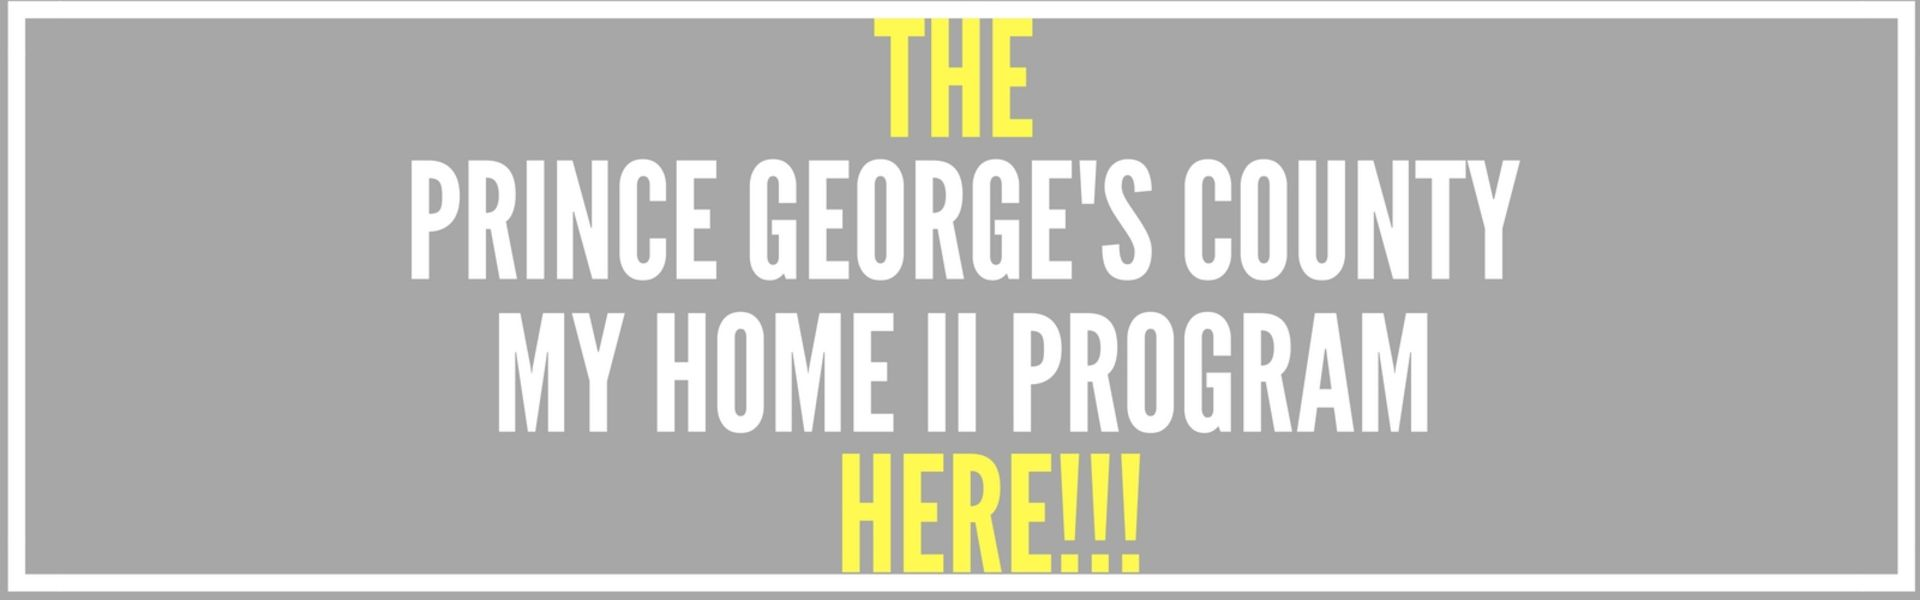 The Prince George's County MY HOME II PROGRAM IS OFFICIALLY HERE TODAY!